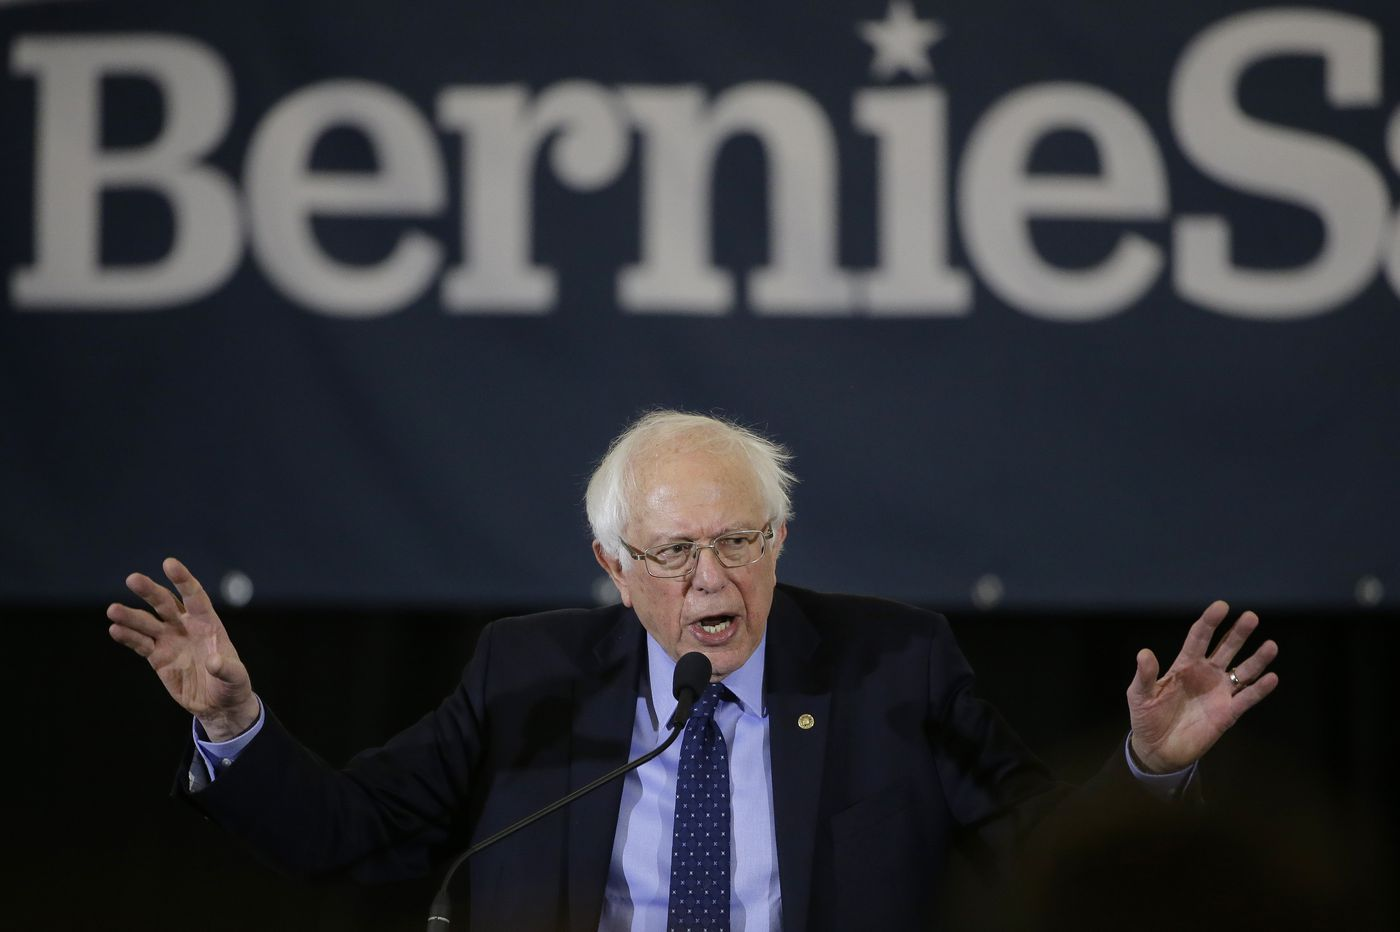 Bernie Sanders' wealth tax won't pay for free medicare, tuition: Morici